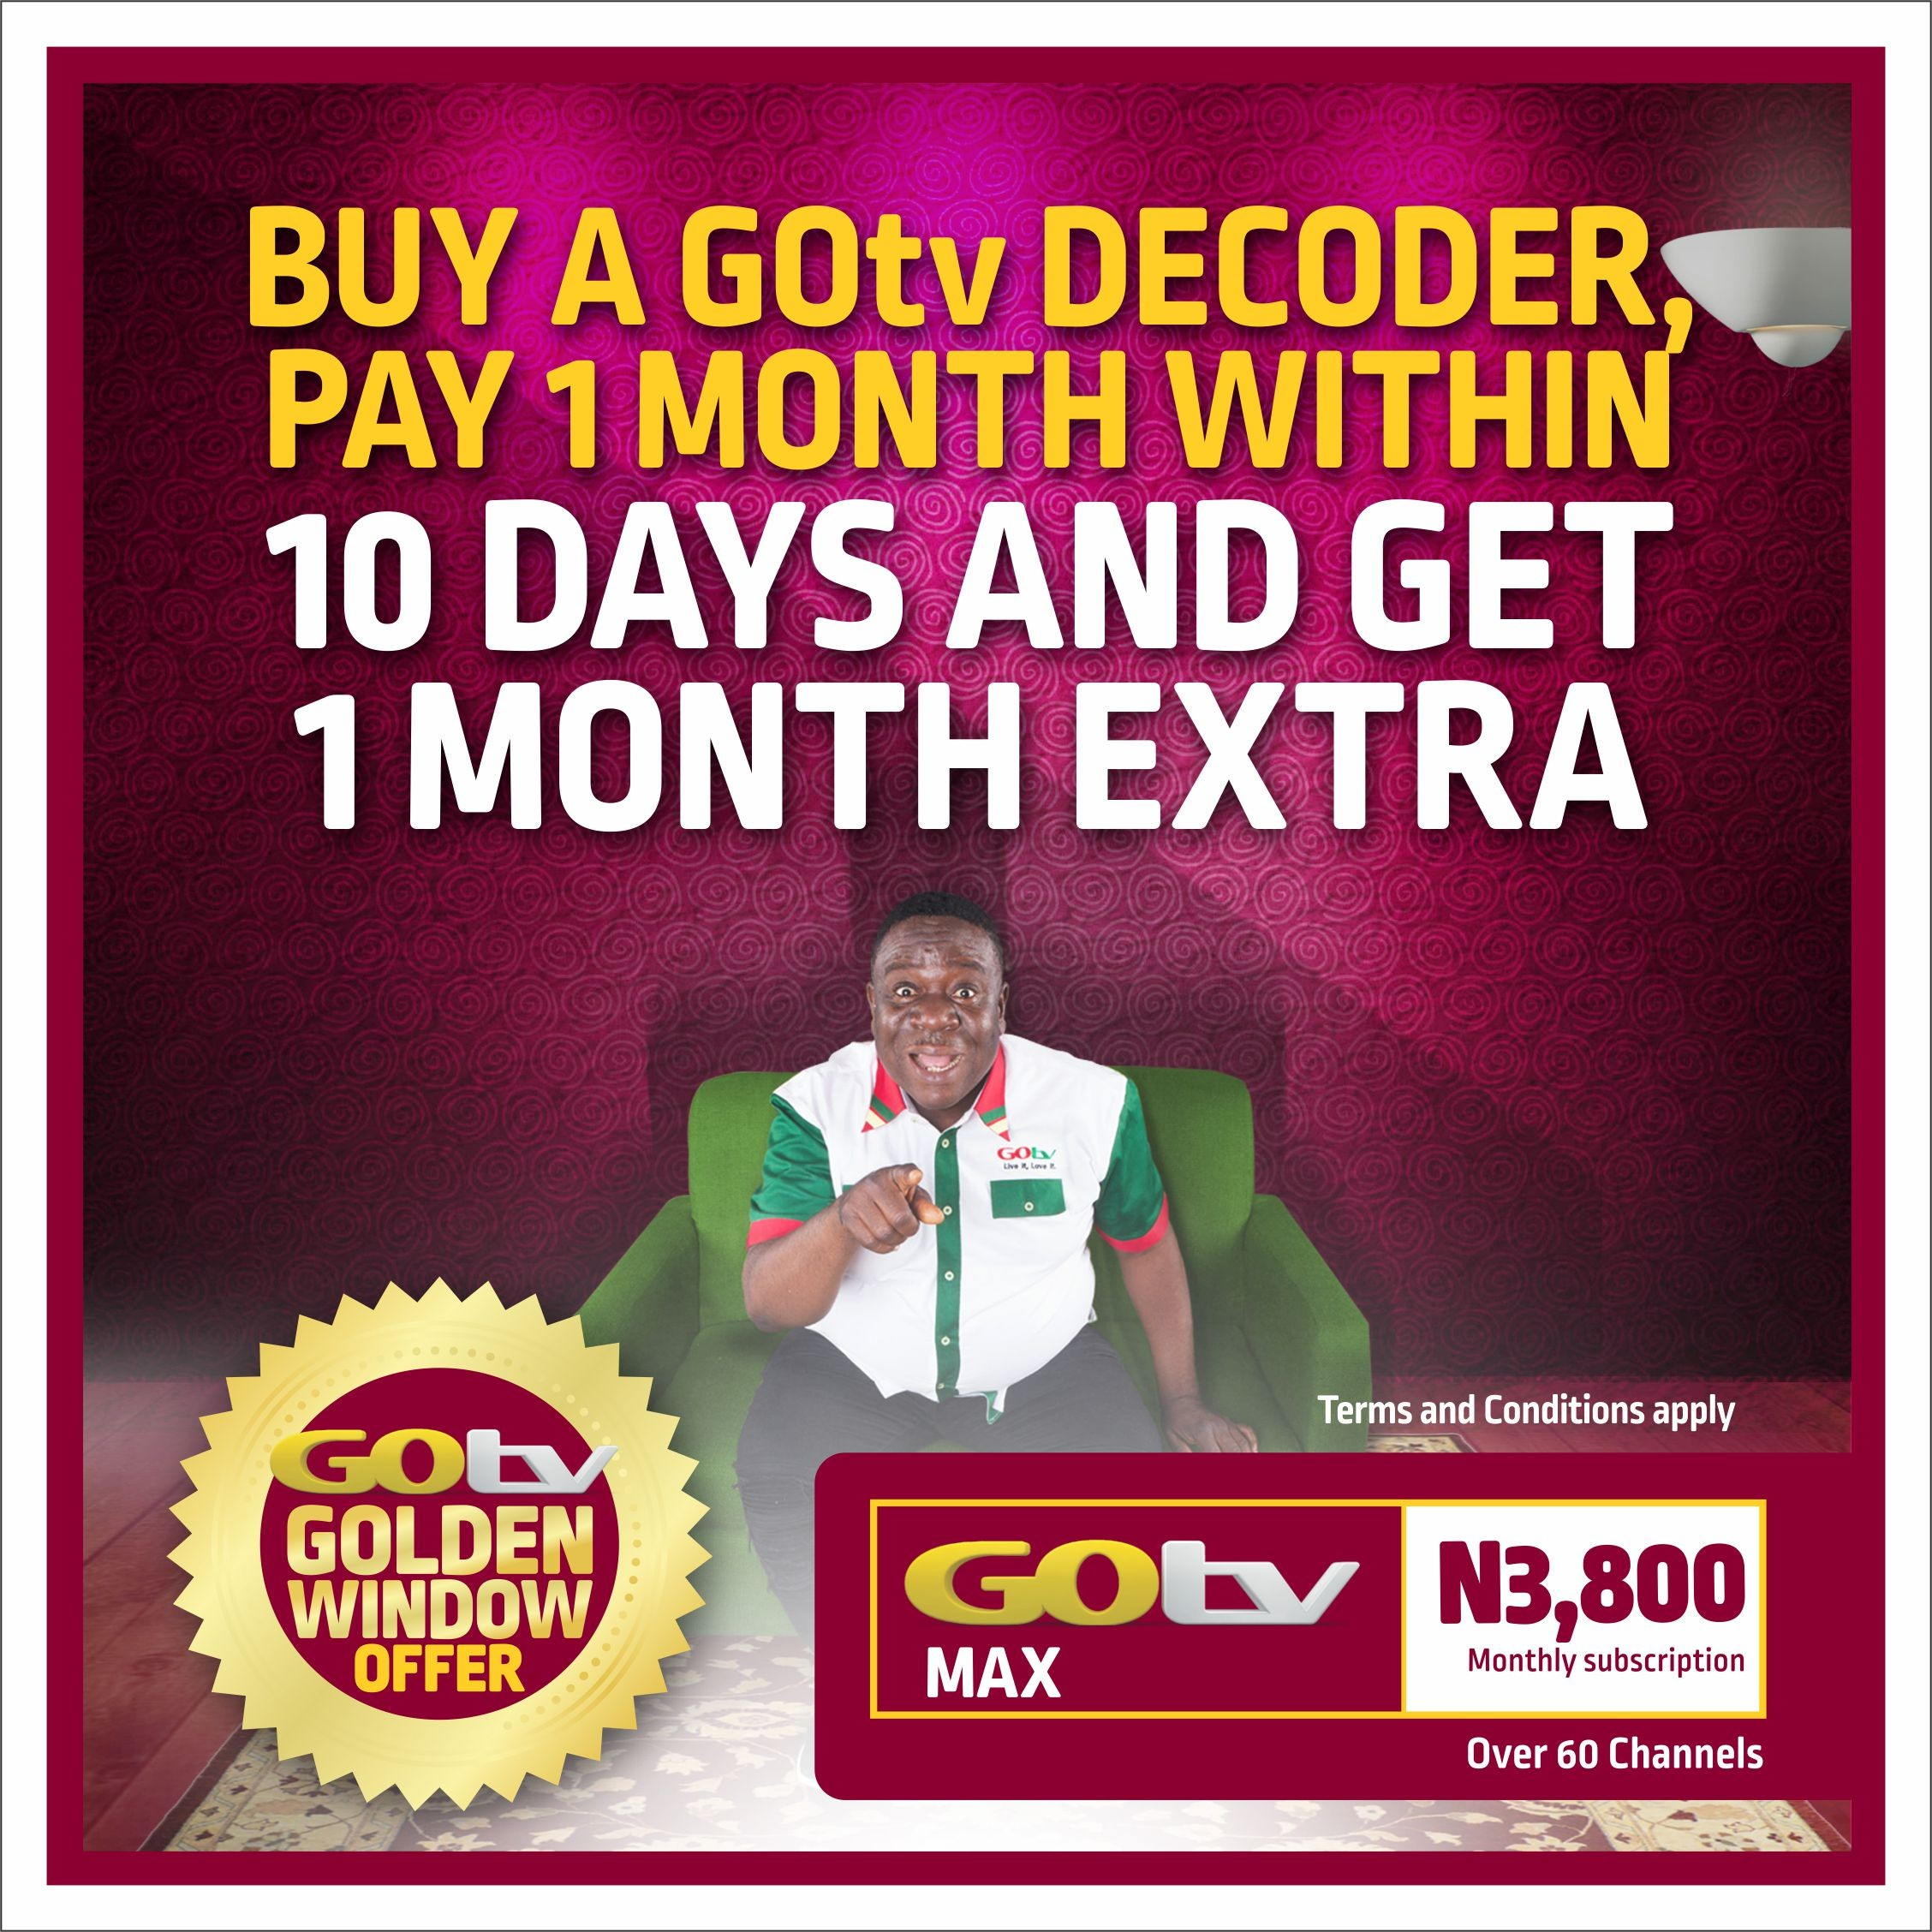 Here's all you need to know about GOtv Golden Window